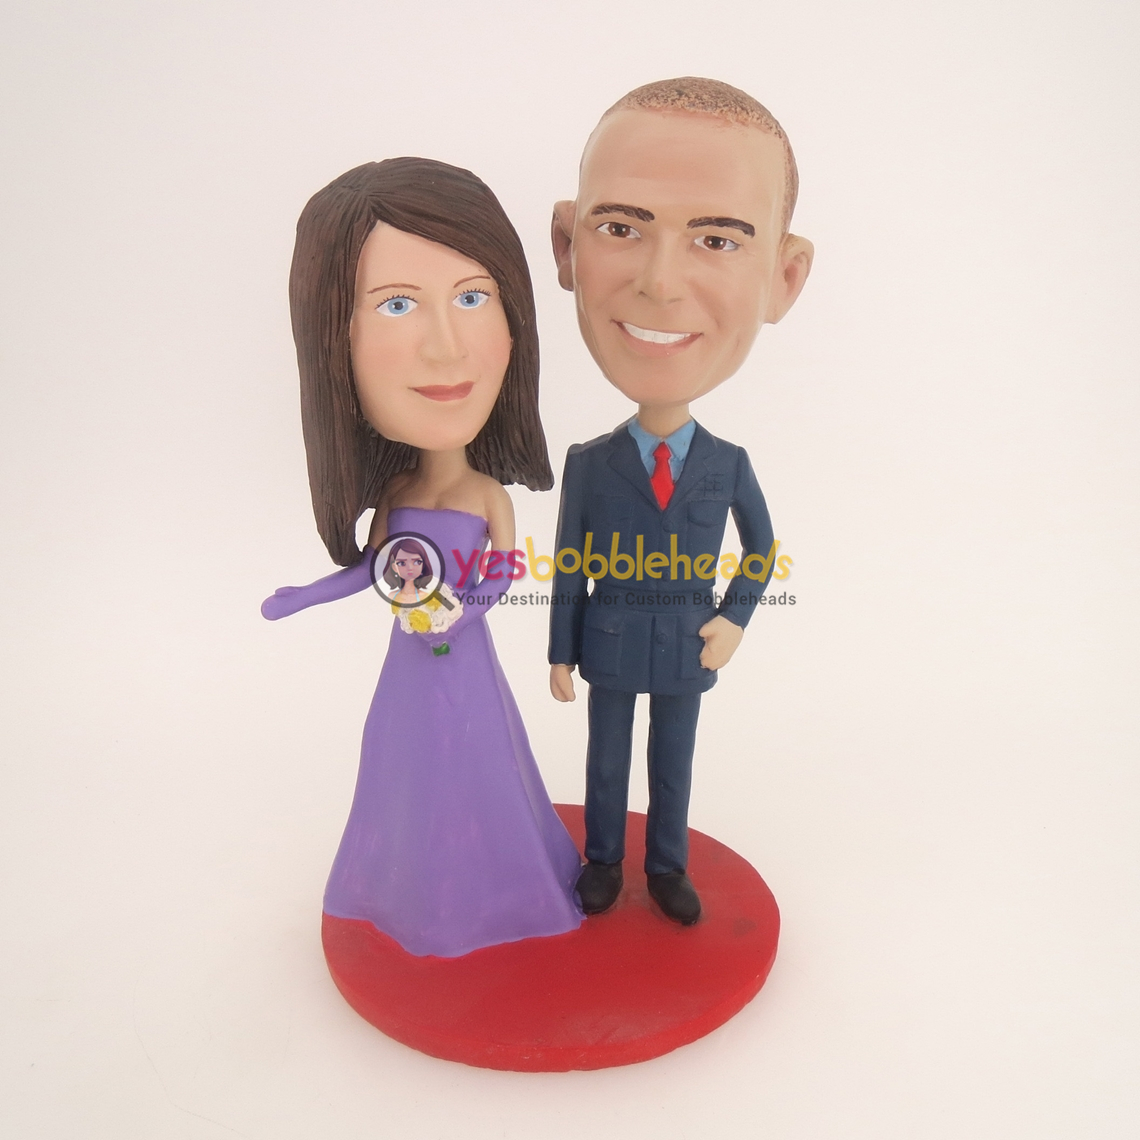 Picture of Custom Bobblehead Doll: Military Man And Bride